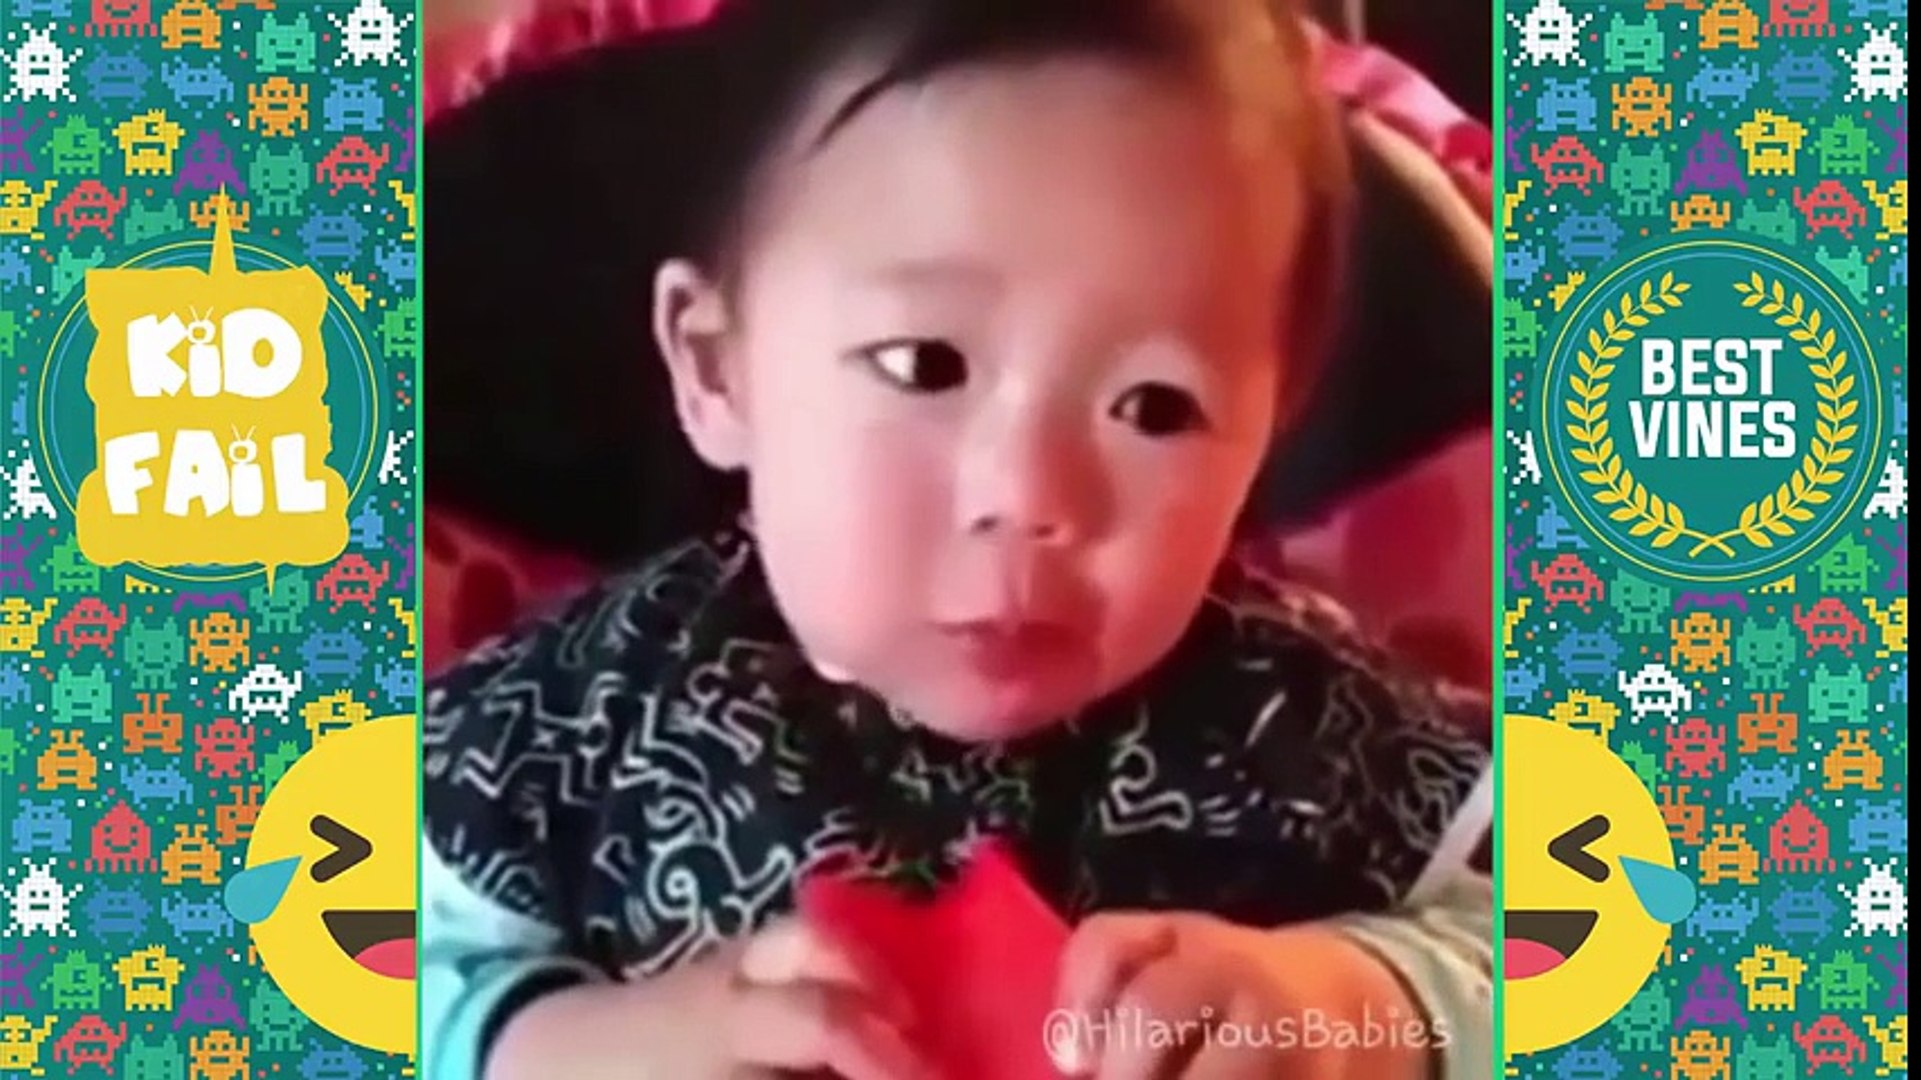 FUNNY KIDS - BEST KIDS FAILS   FUNNY KIDS FAILS TRY NOT TO LAUGH OR GRIN COMPILATION #01